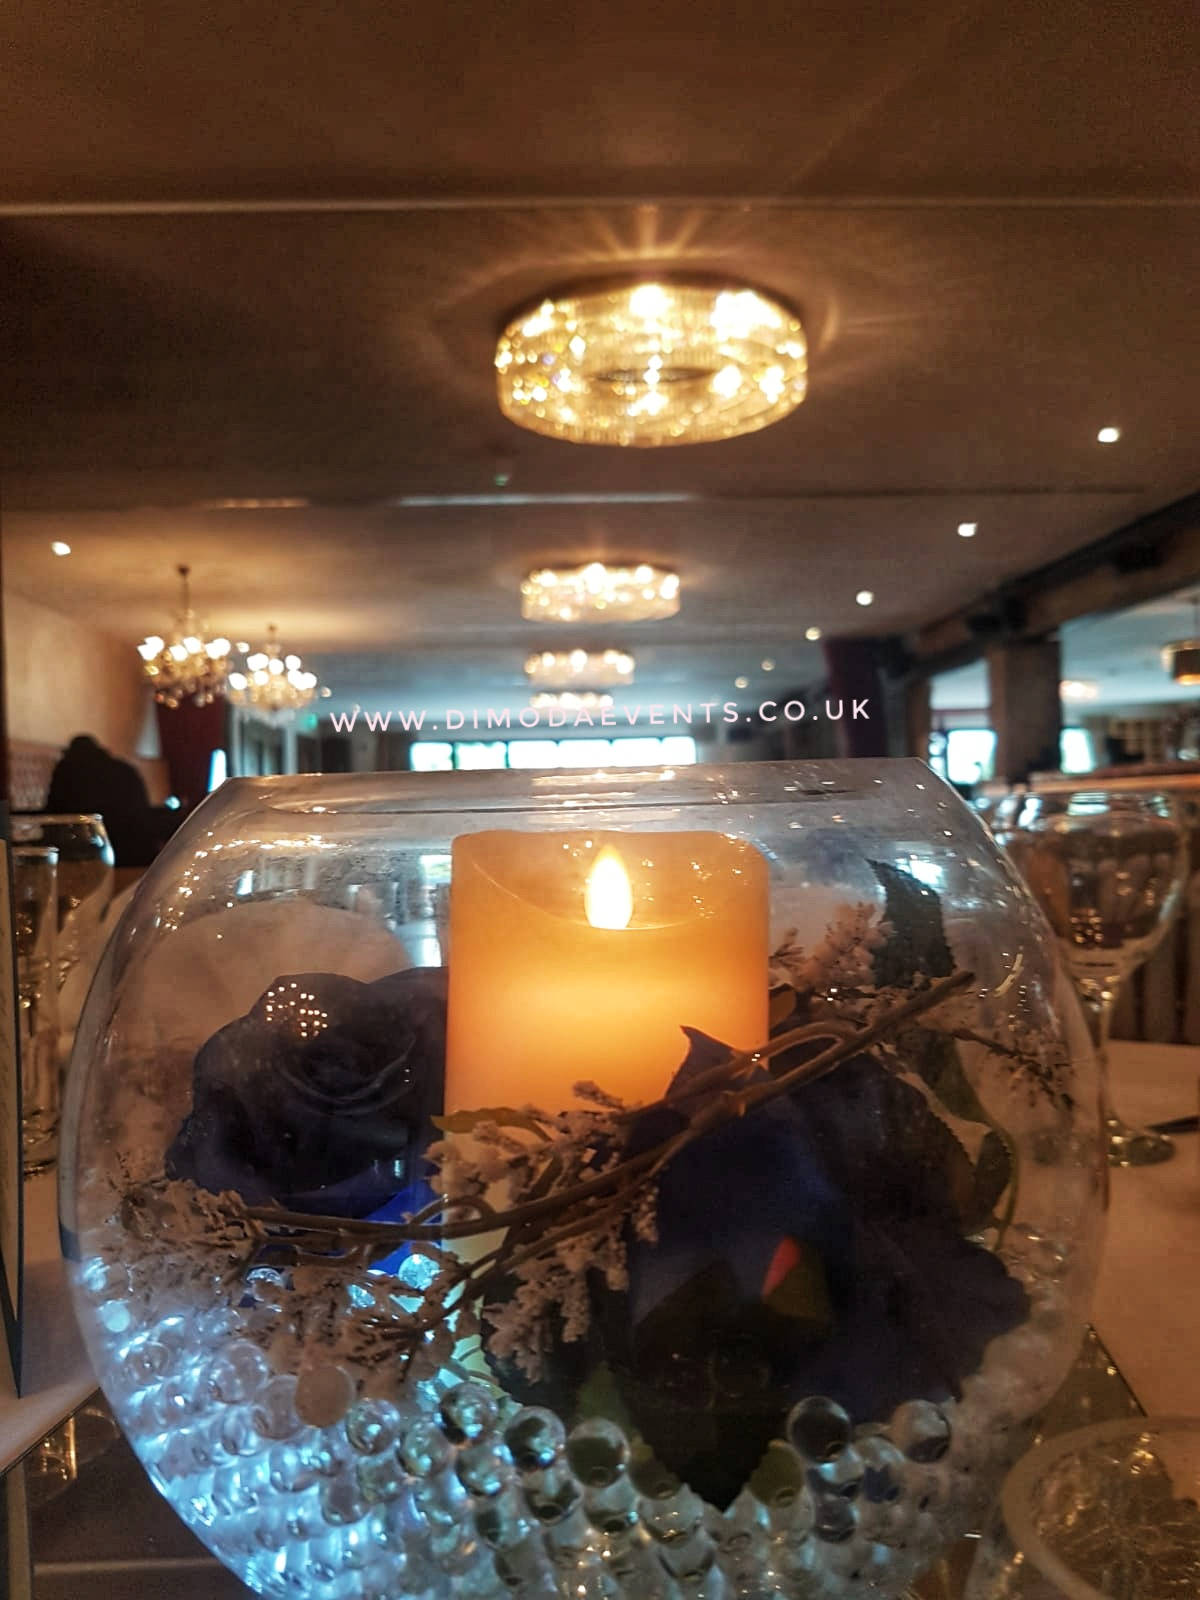 Fishbowl blue rose pillar candle